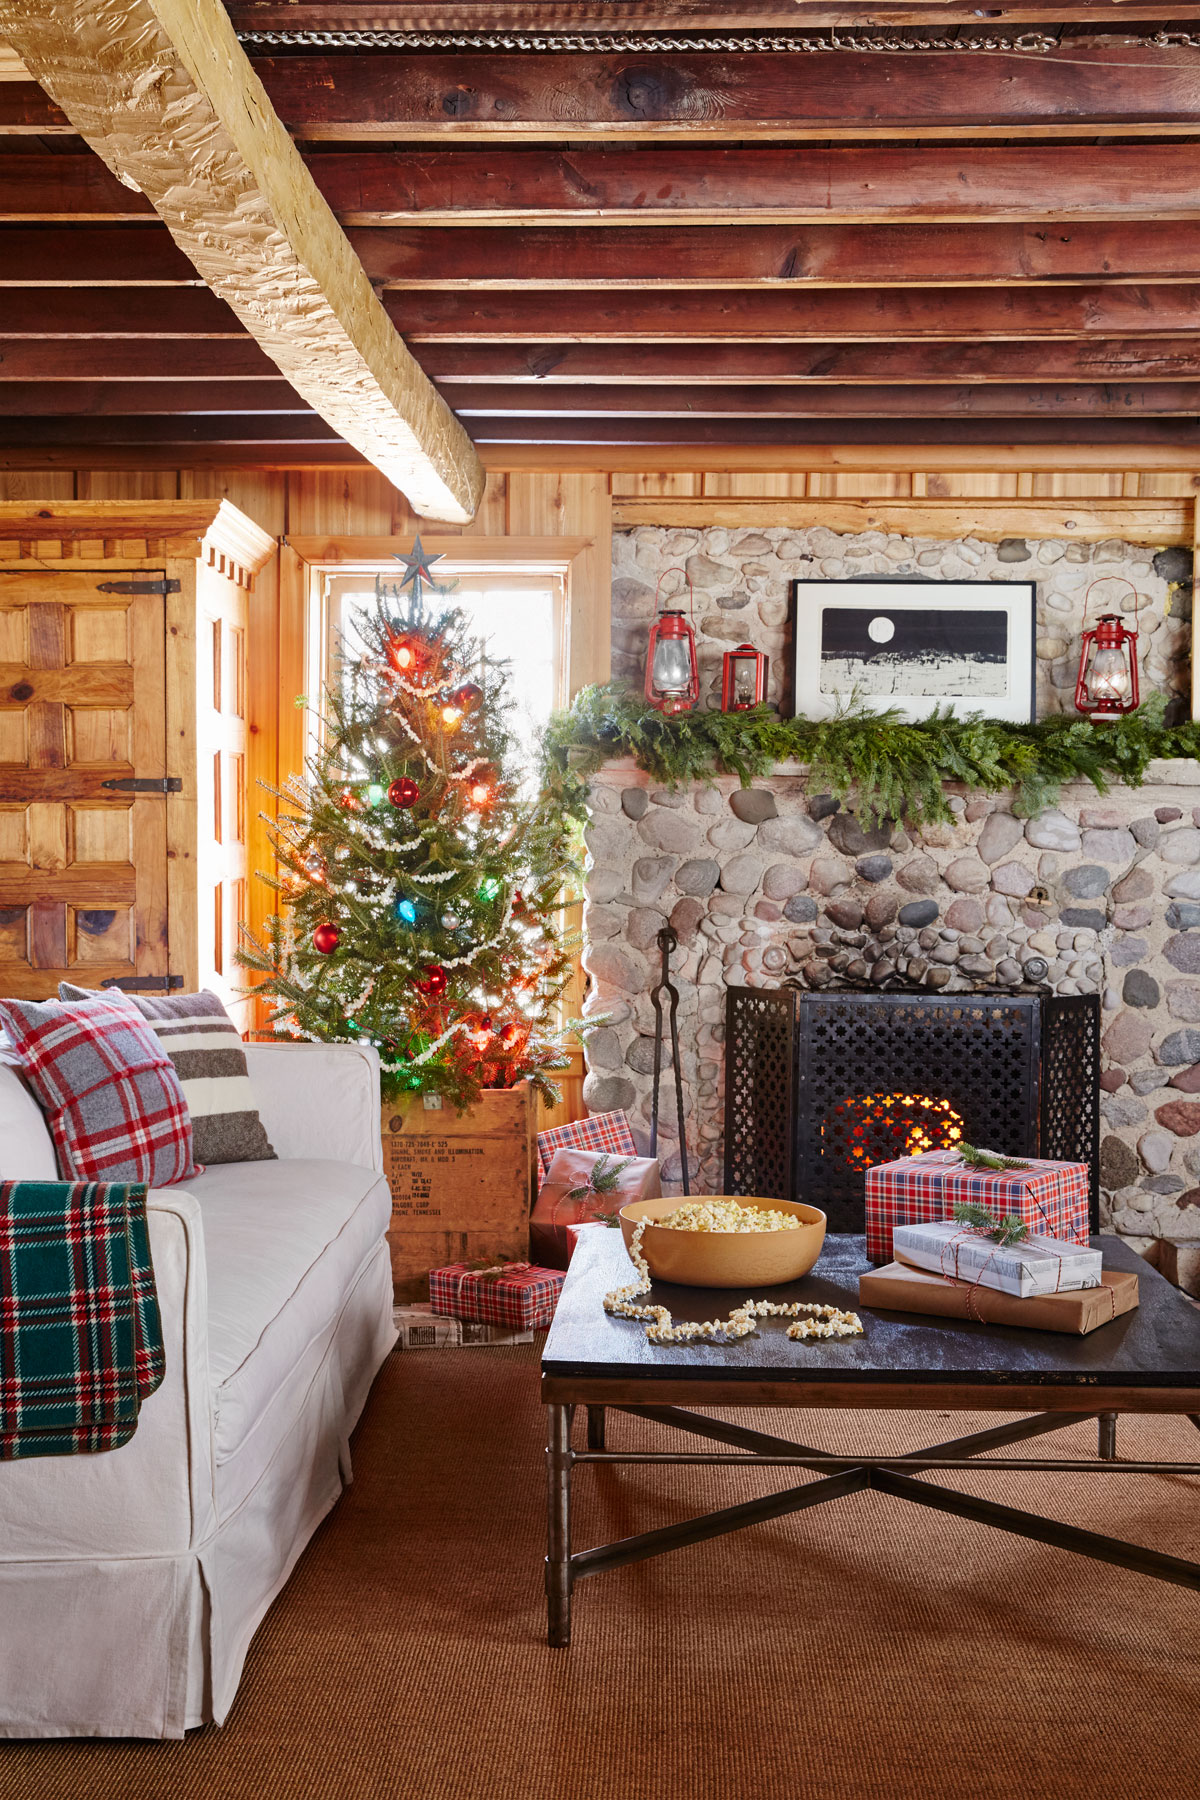 Rustic cabin christmas decorations - Rustic Cabin Christmas Decorations 3